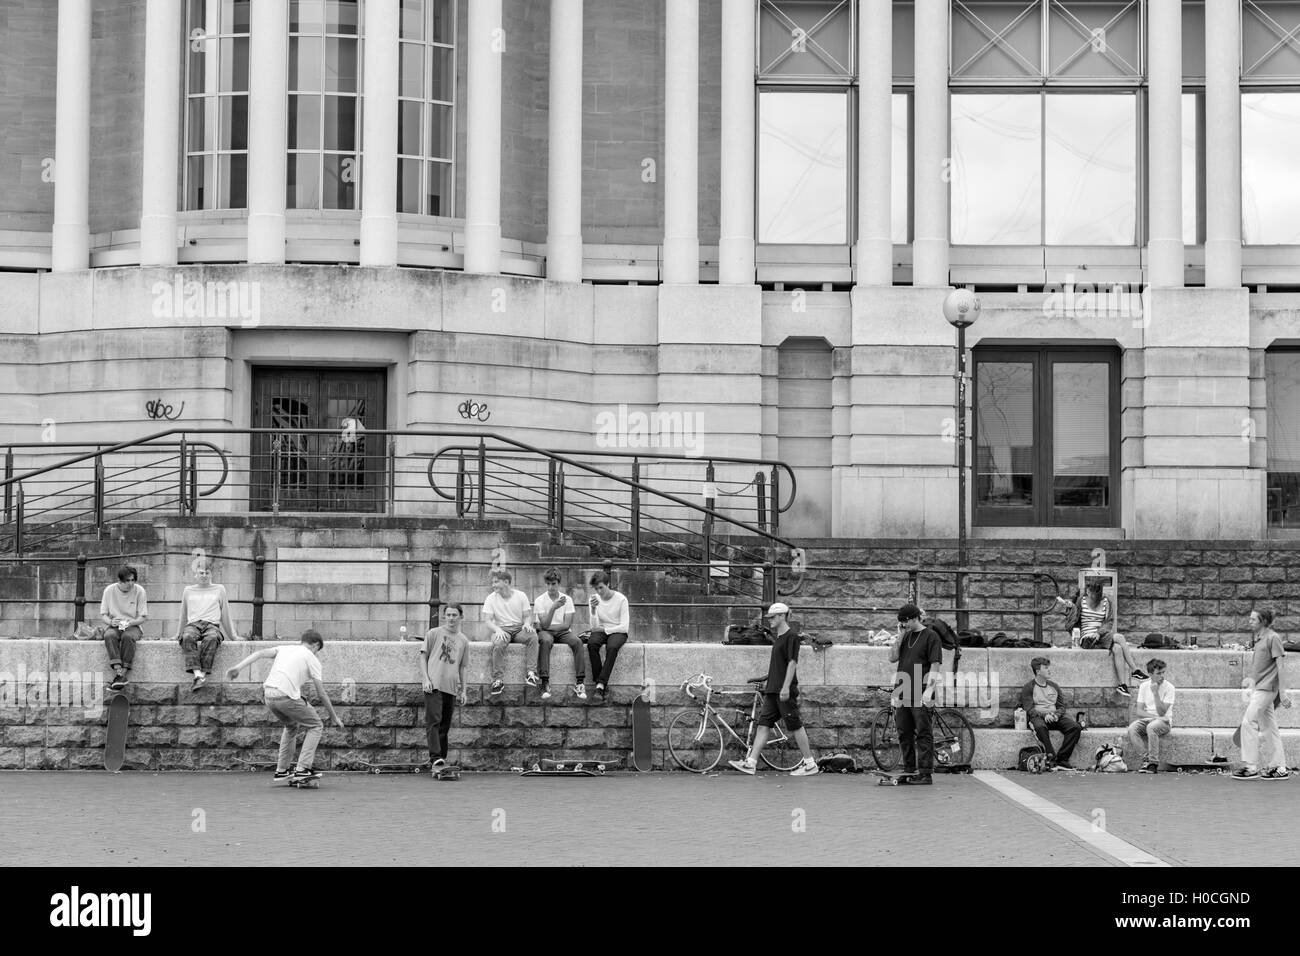 Monochrome, youths skateboarding in Bristol City Harbour, Bristol, England, UK - Stock Image